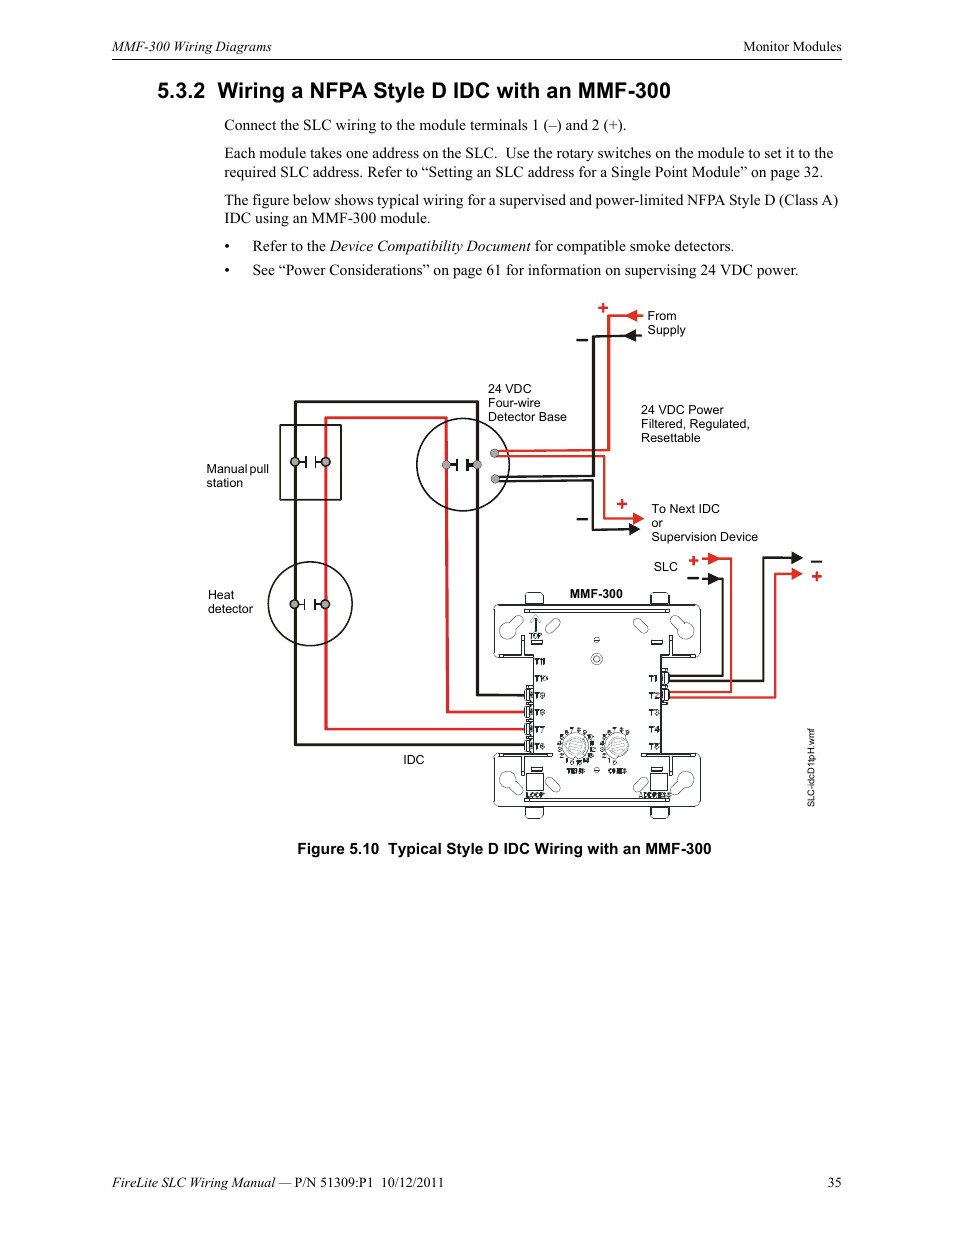 2 wiring a nfpa style d idc with an mmf-300, Wiring a nfpa ... on